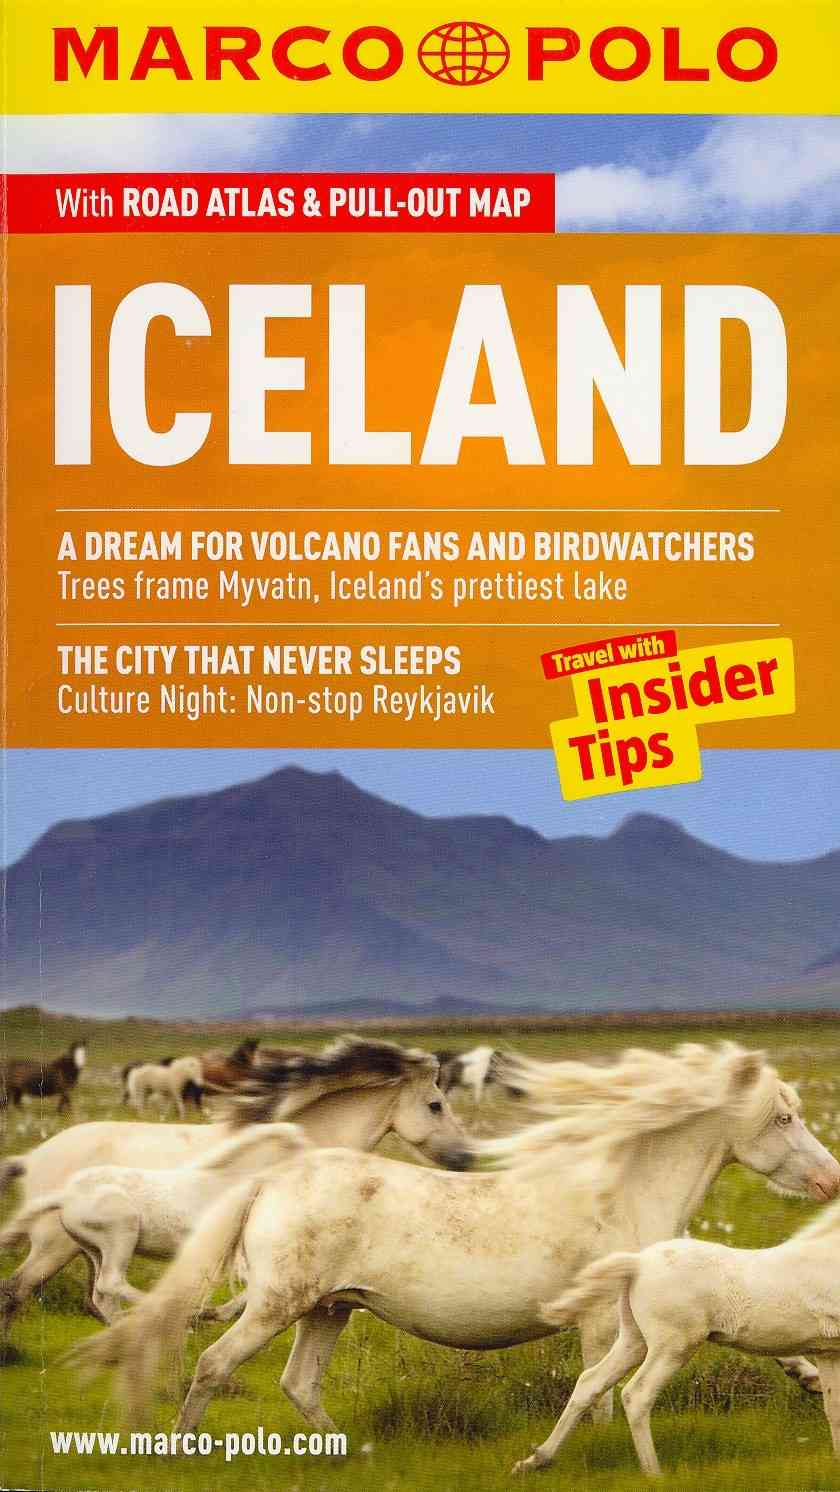 Iceland Marco Polo Guide By Marco Polo (EDT)